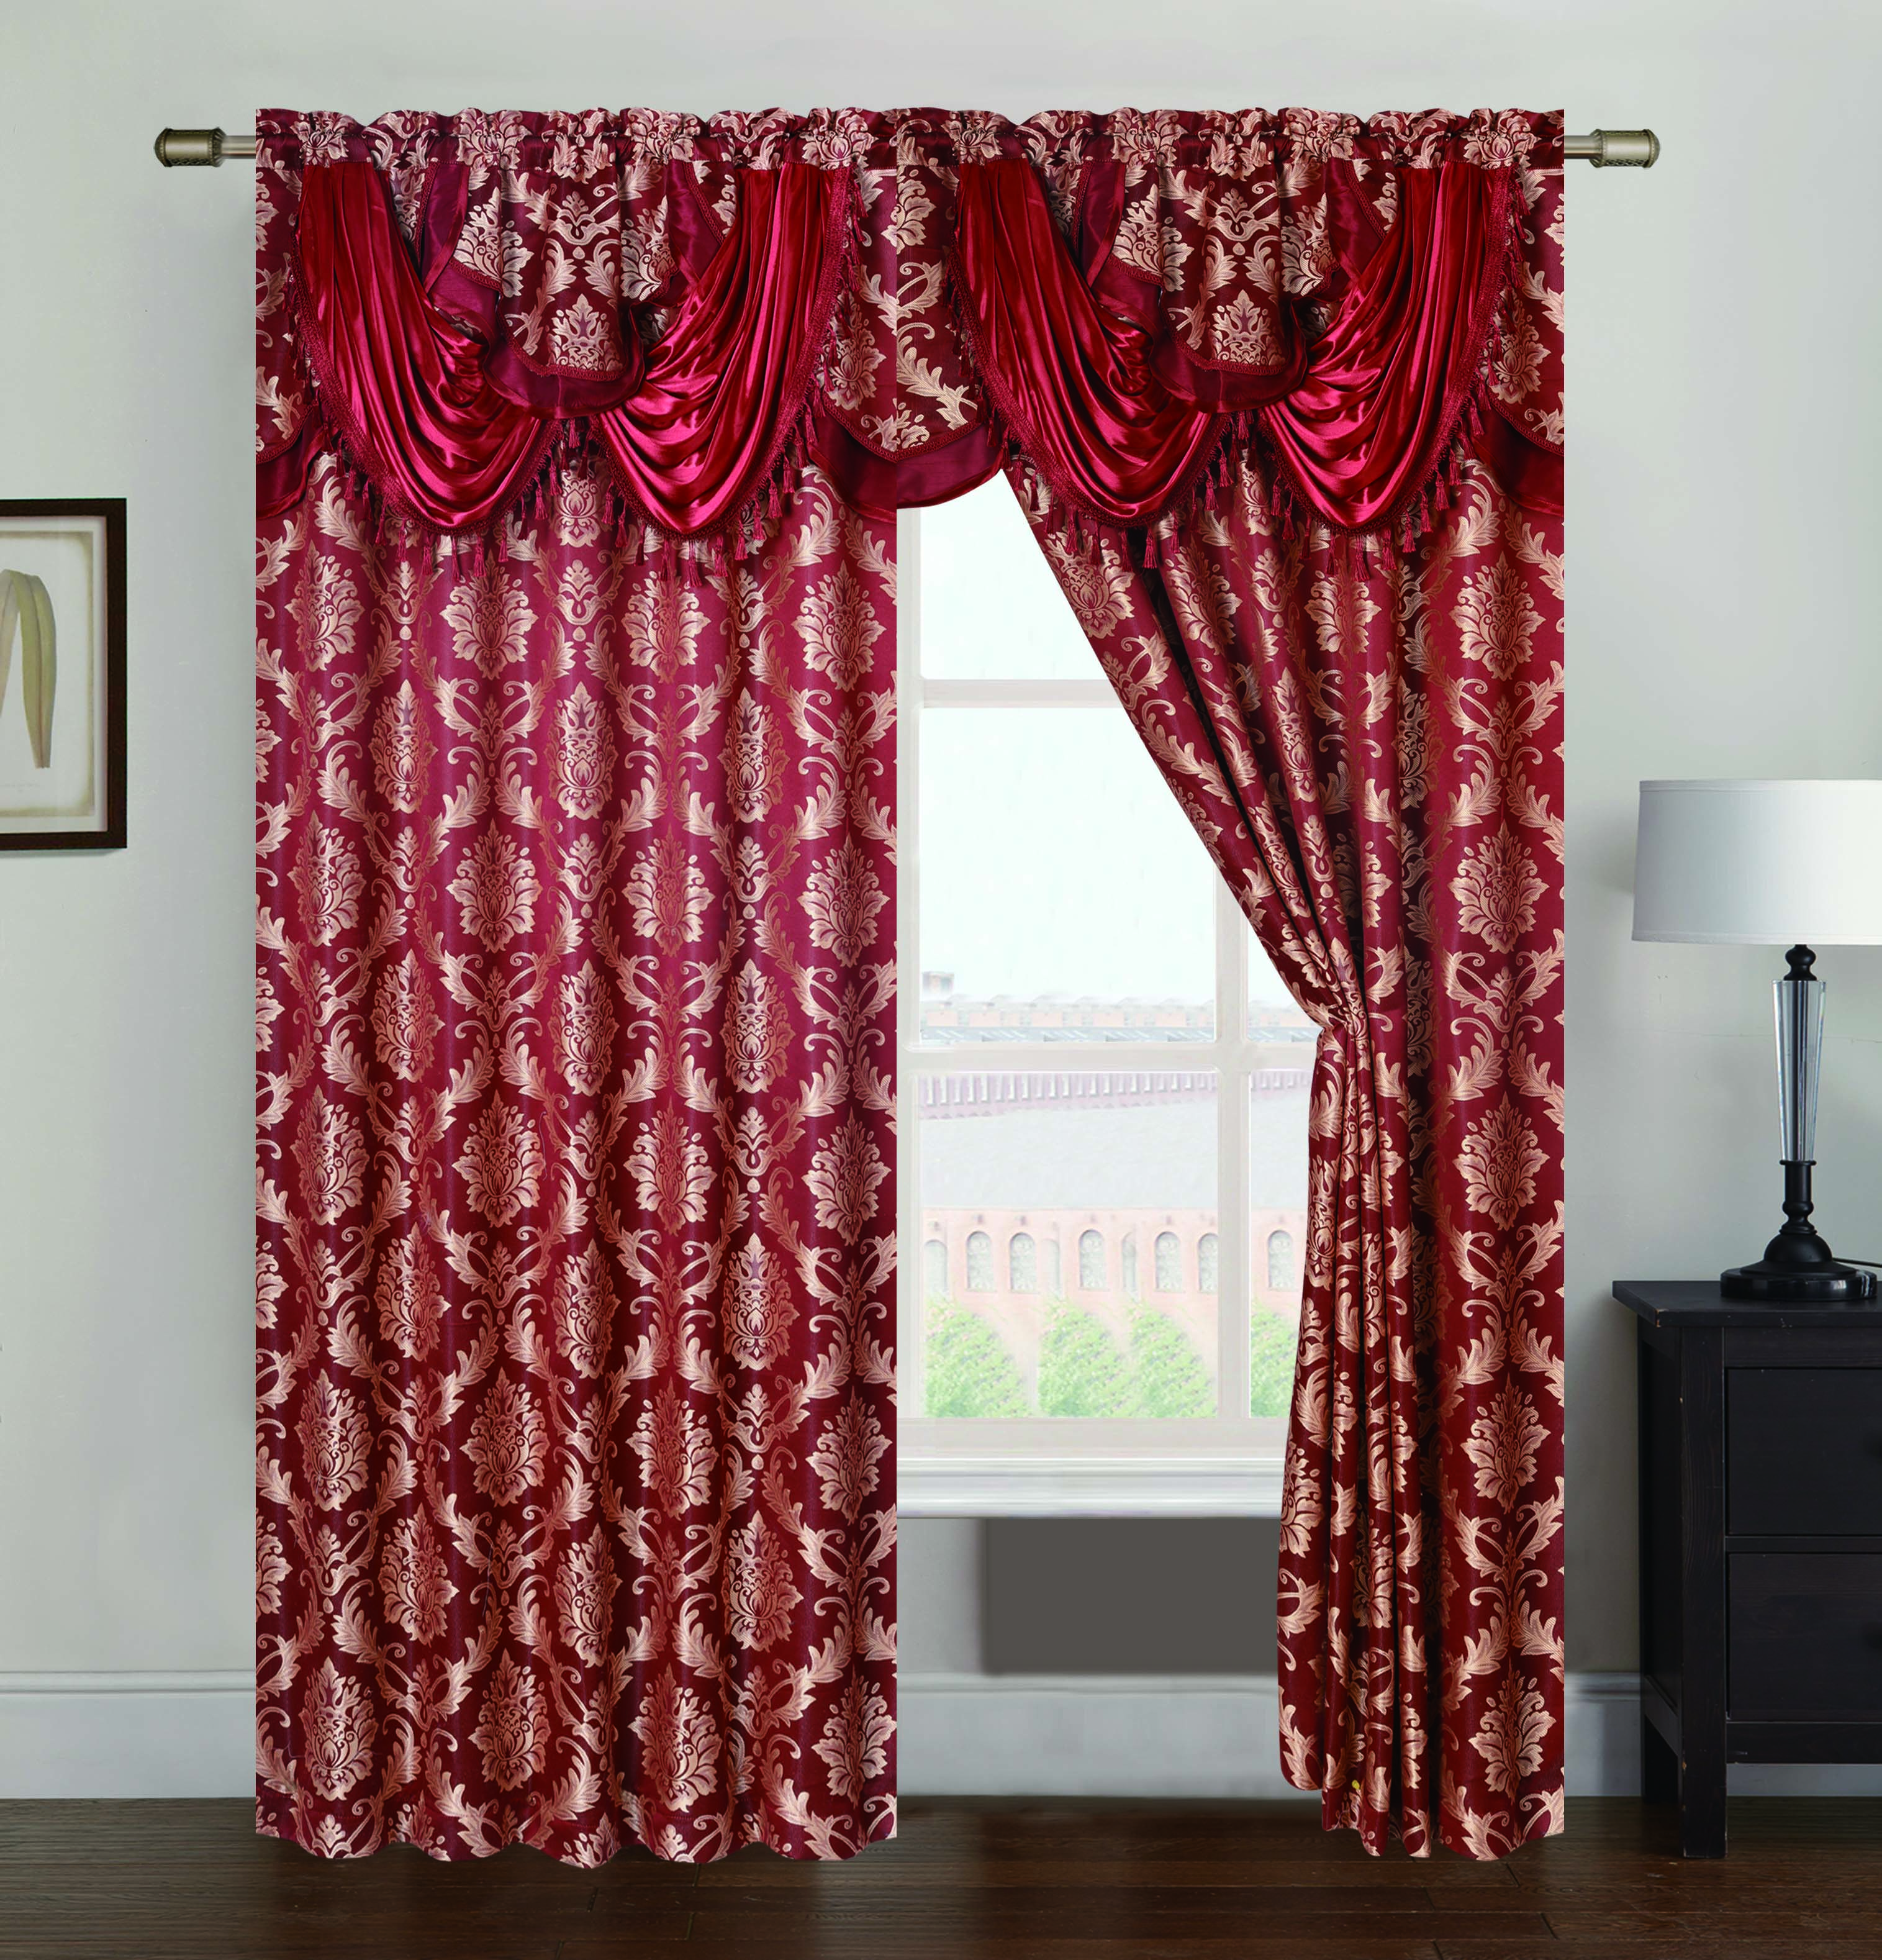 Andover Jacquard 54 x 84 in. Double Rod Pocket Curtain Panel w/ Attached 18 in. Valance, Burgundy